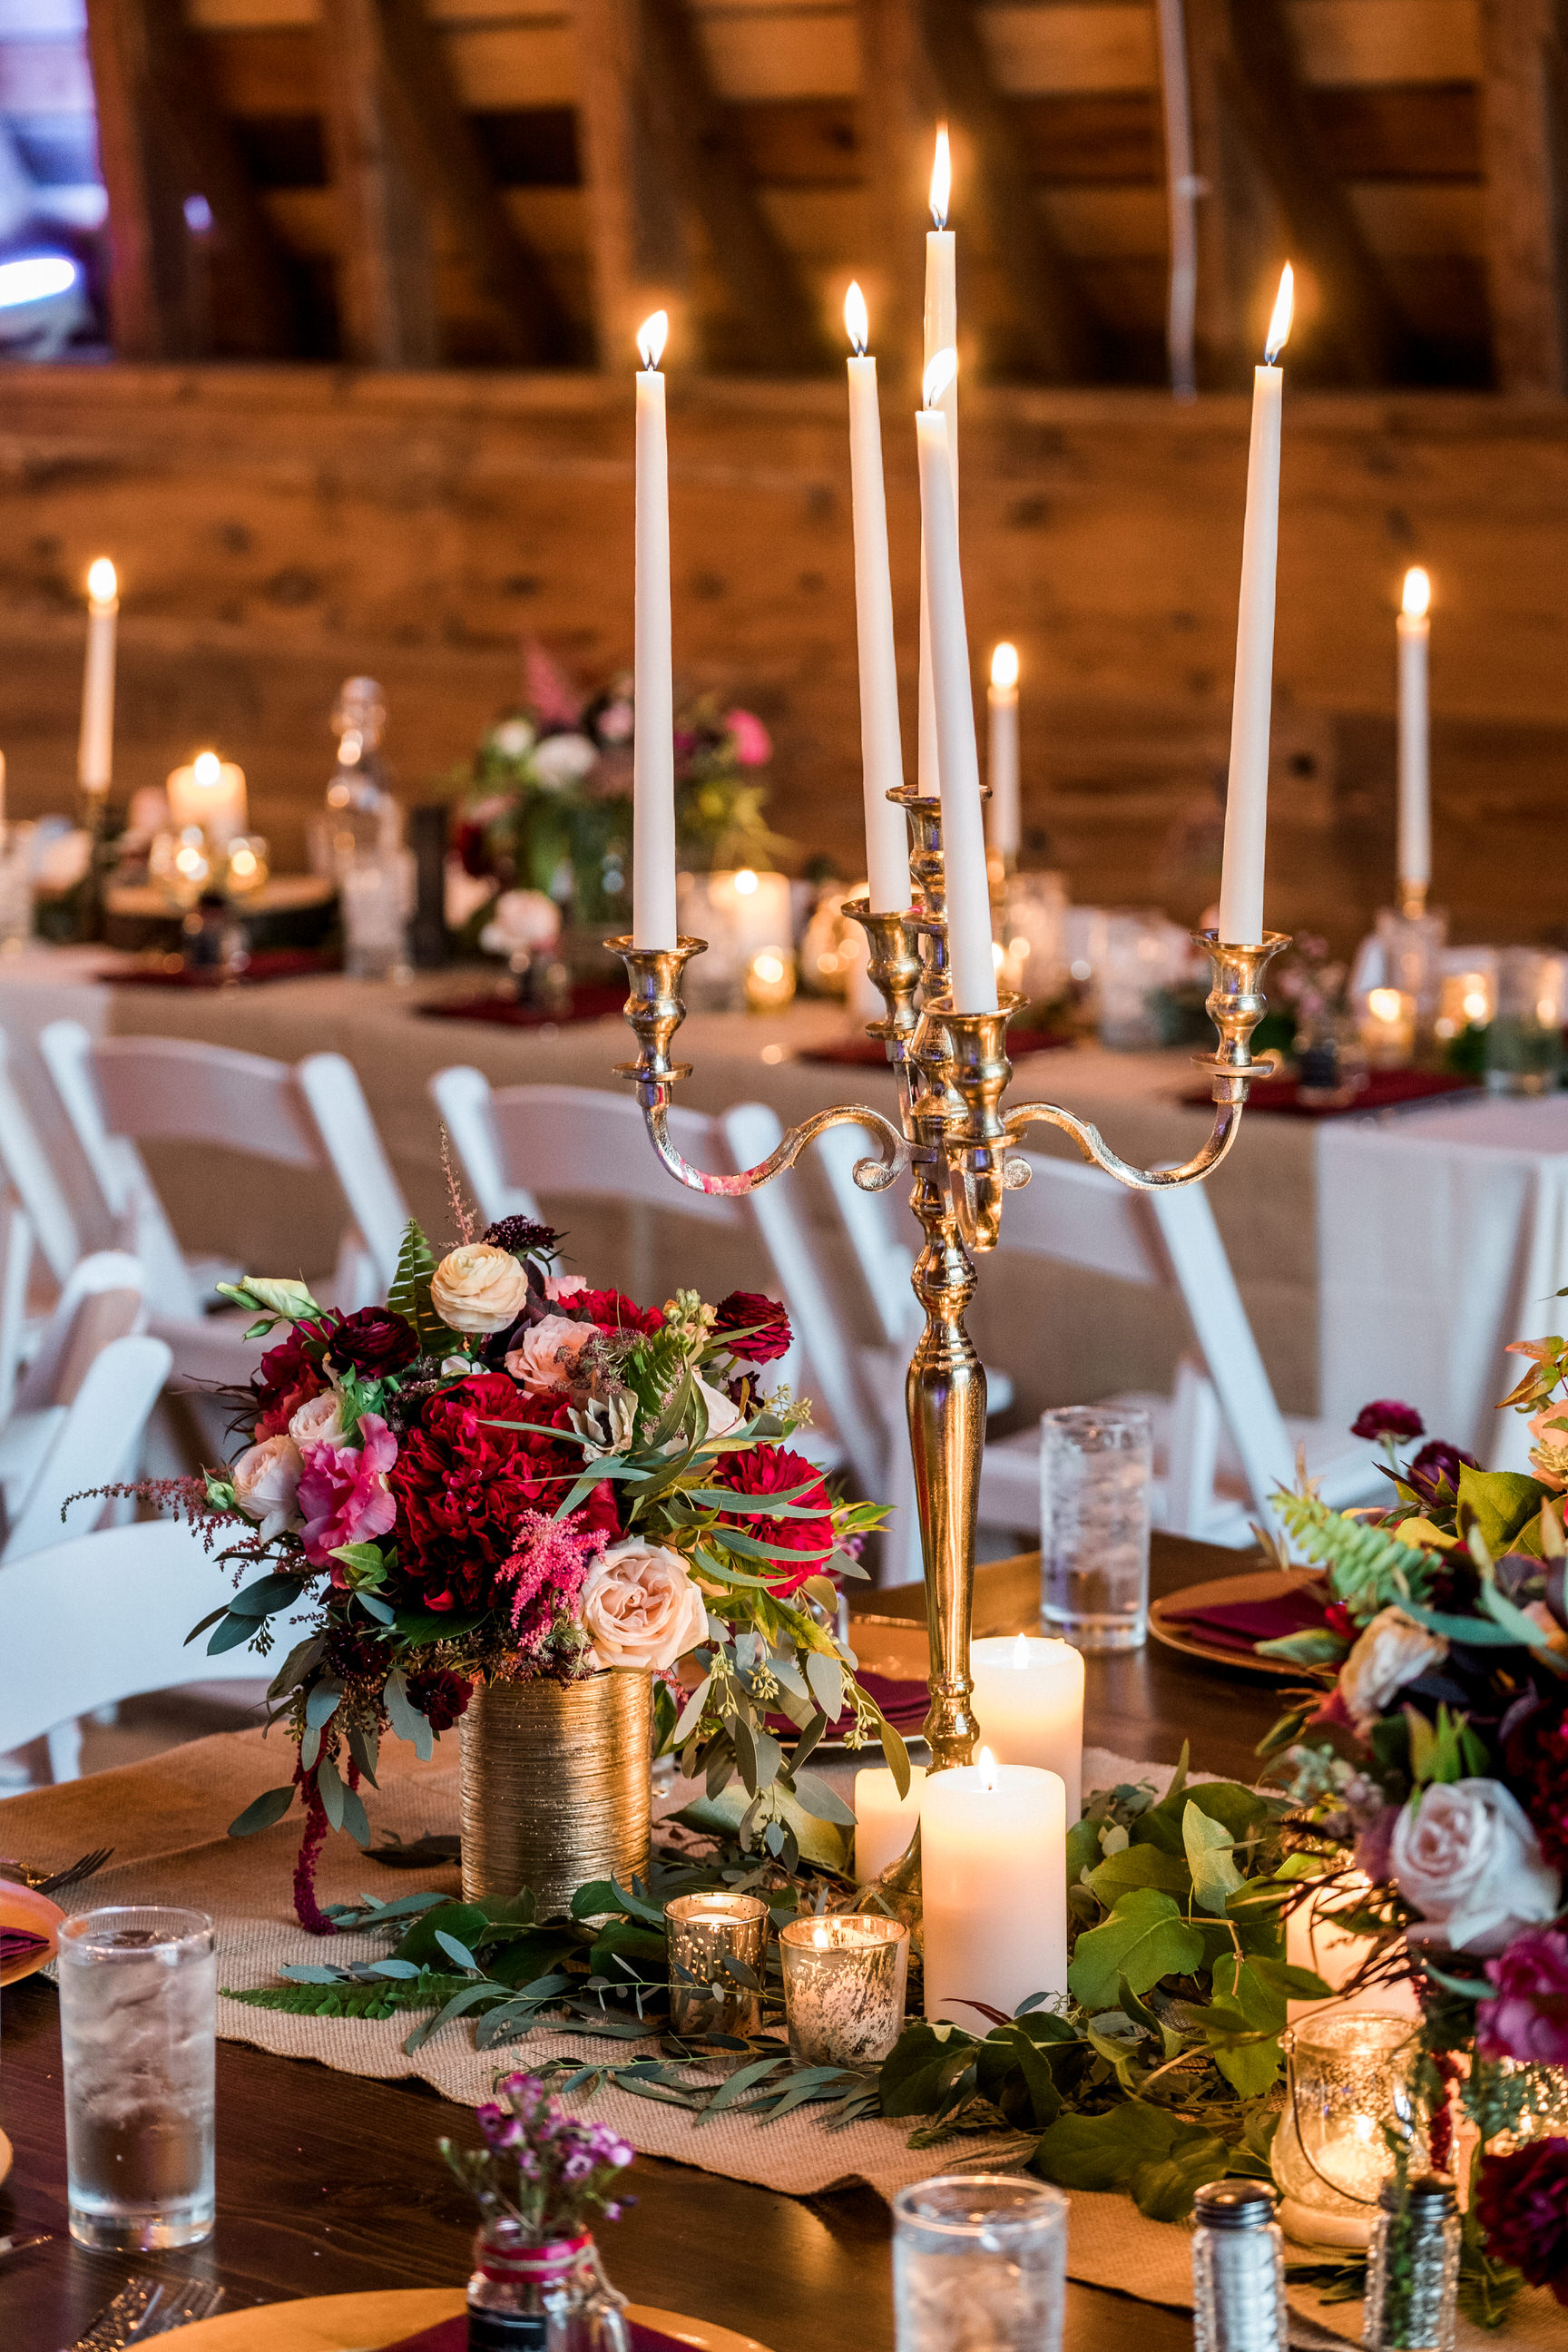 bloom designs and kate kuepers wedding decor